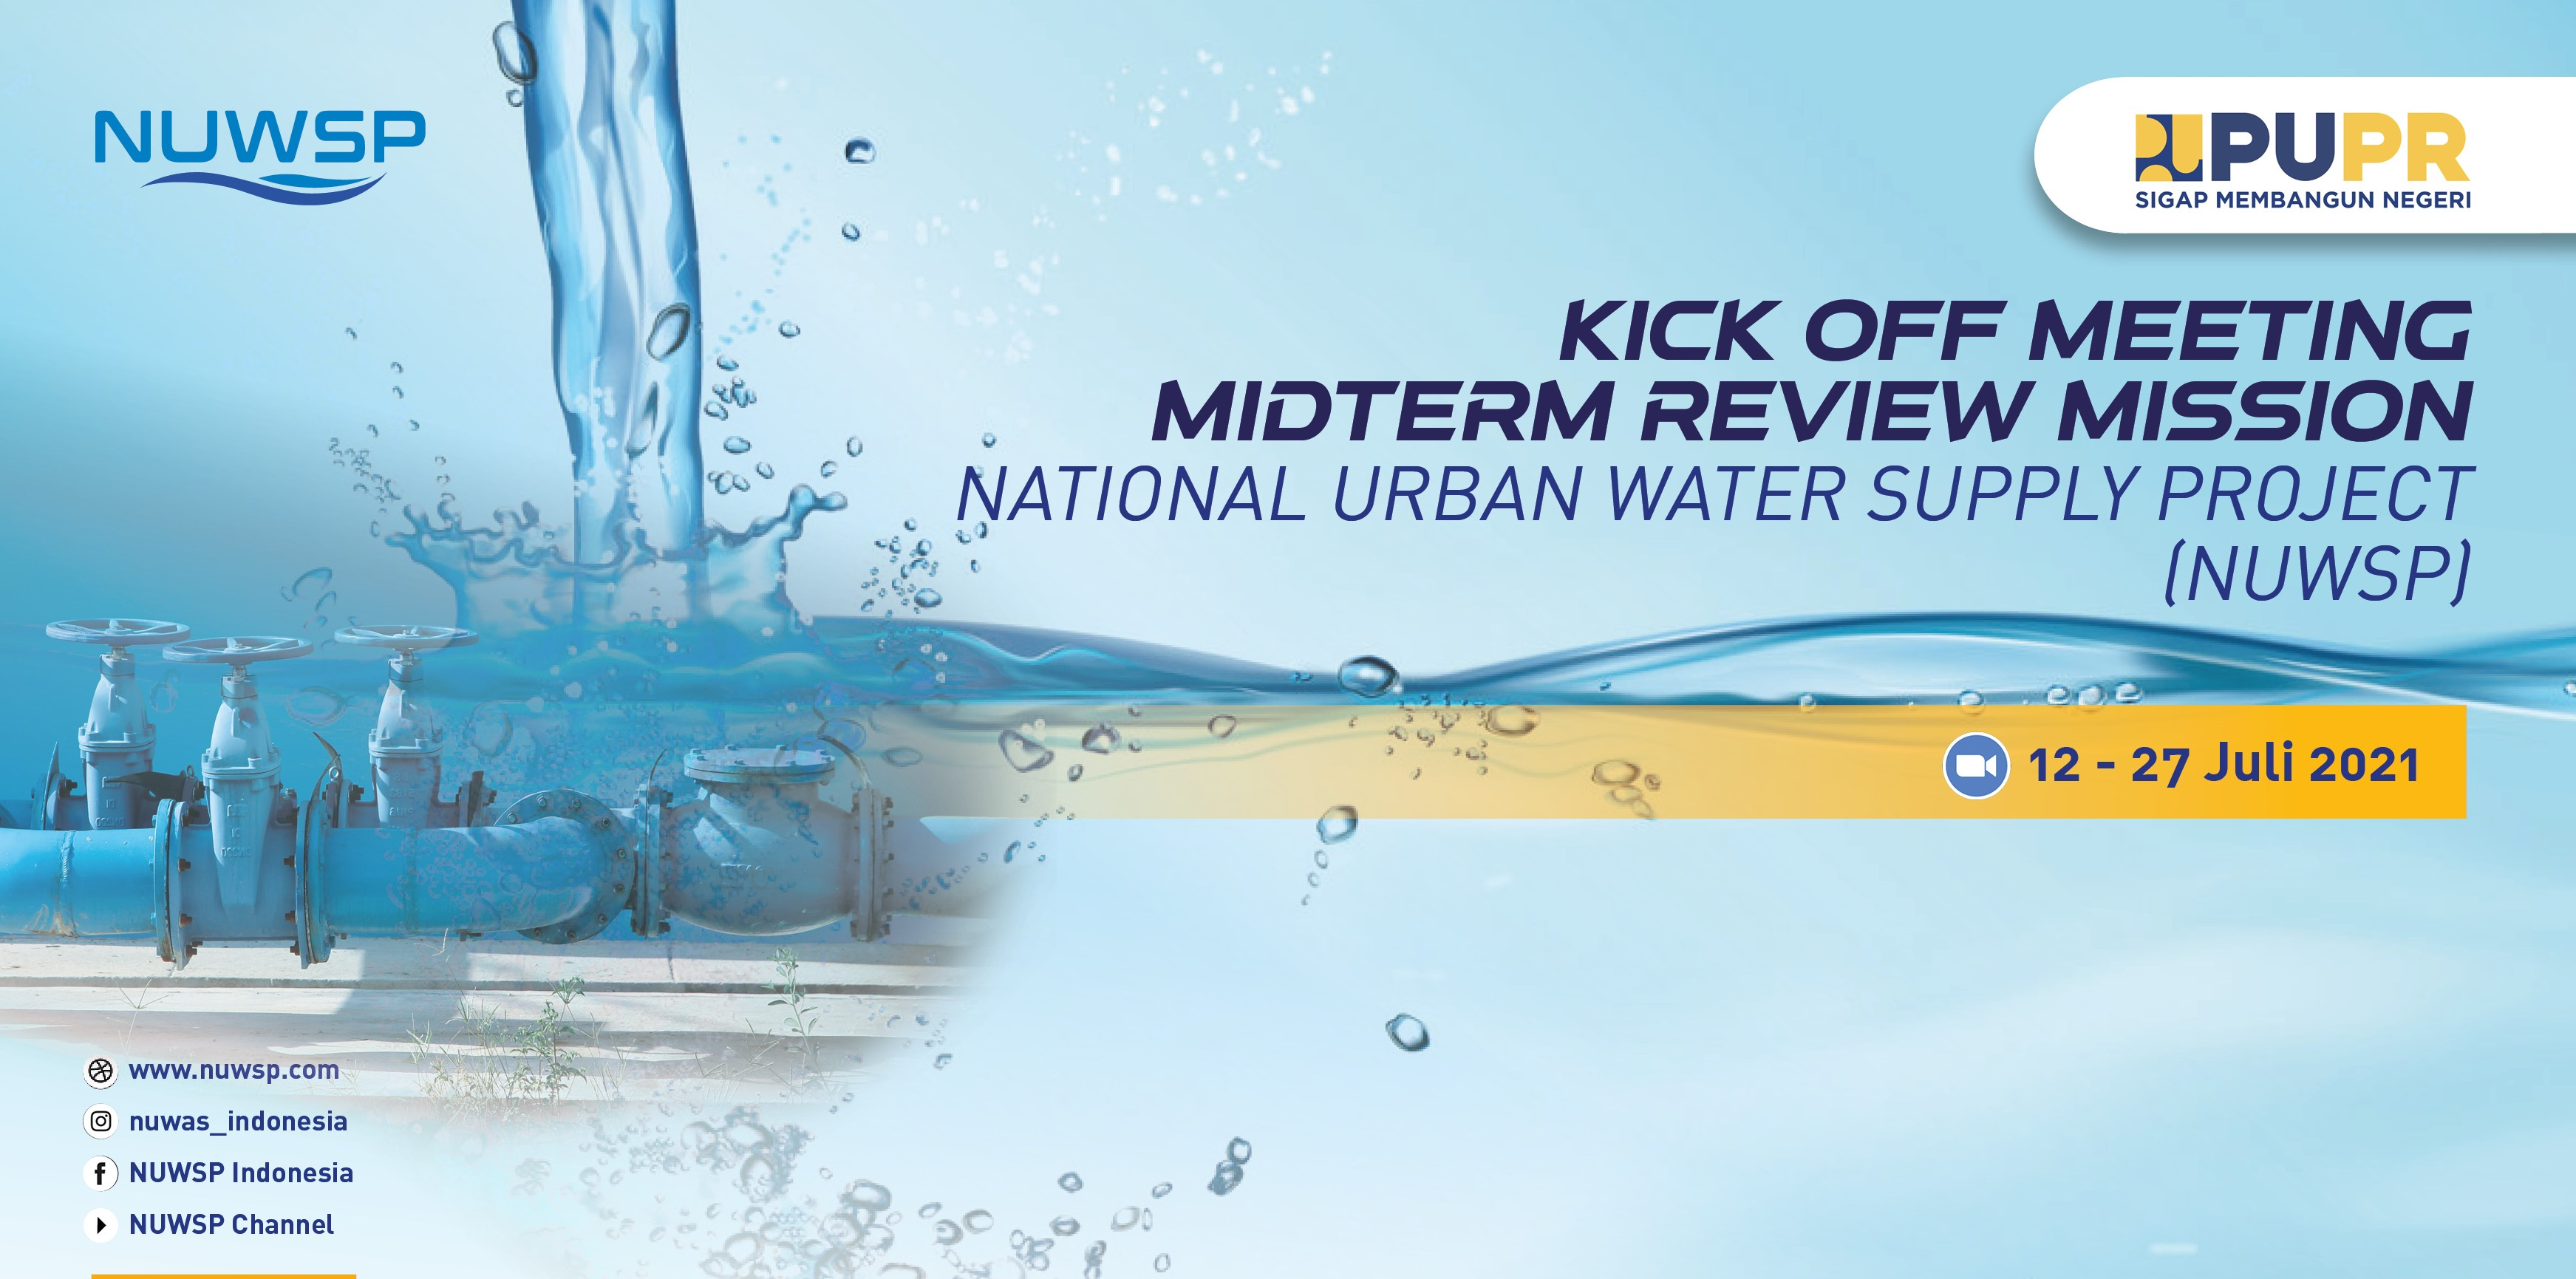 Kick Off Meeting Midtern Review Mission National Urban Water Supply Project (NUWSP)